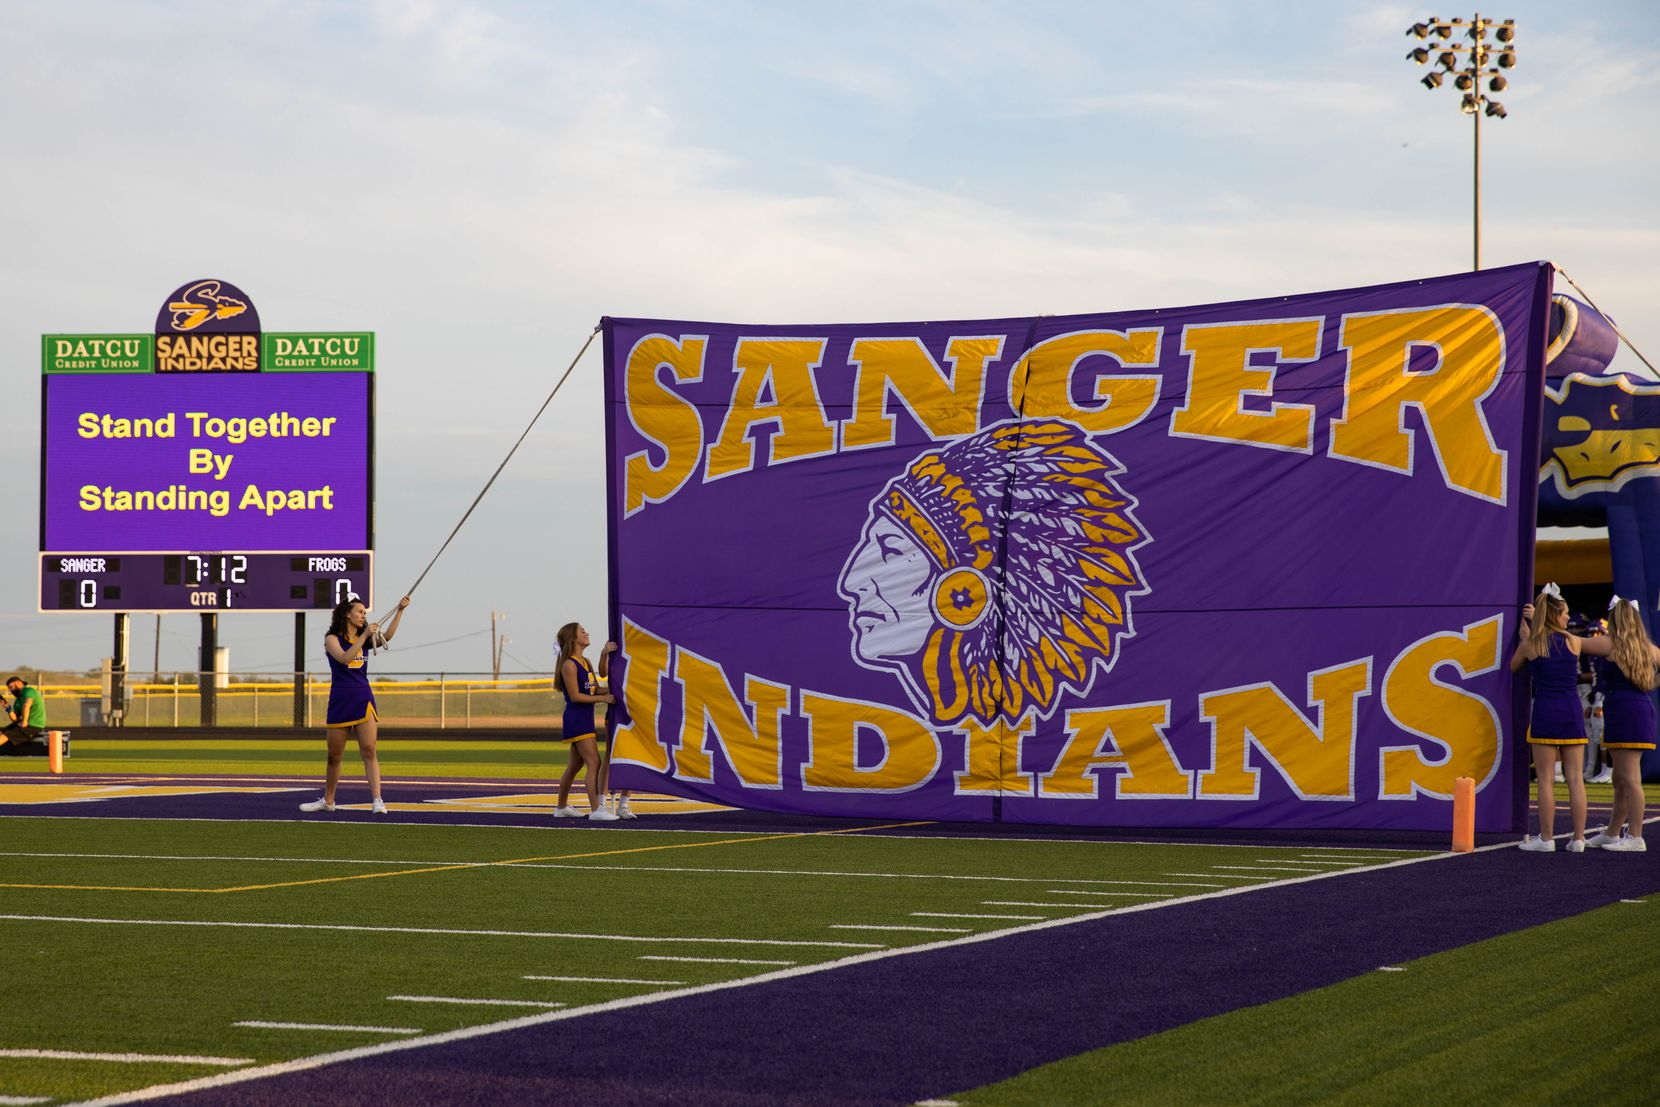 Sanger High School cheerleaders holds a banner before the start of a game against Lake Worth High School on Sept. 4, 2020 in Sanger. Sanger leads 26-14 at halftime. (Juan Figueroa/ The Dallas Morning News)